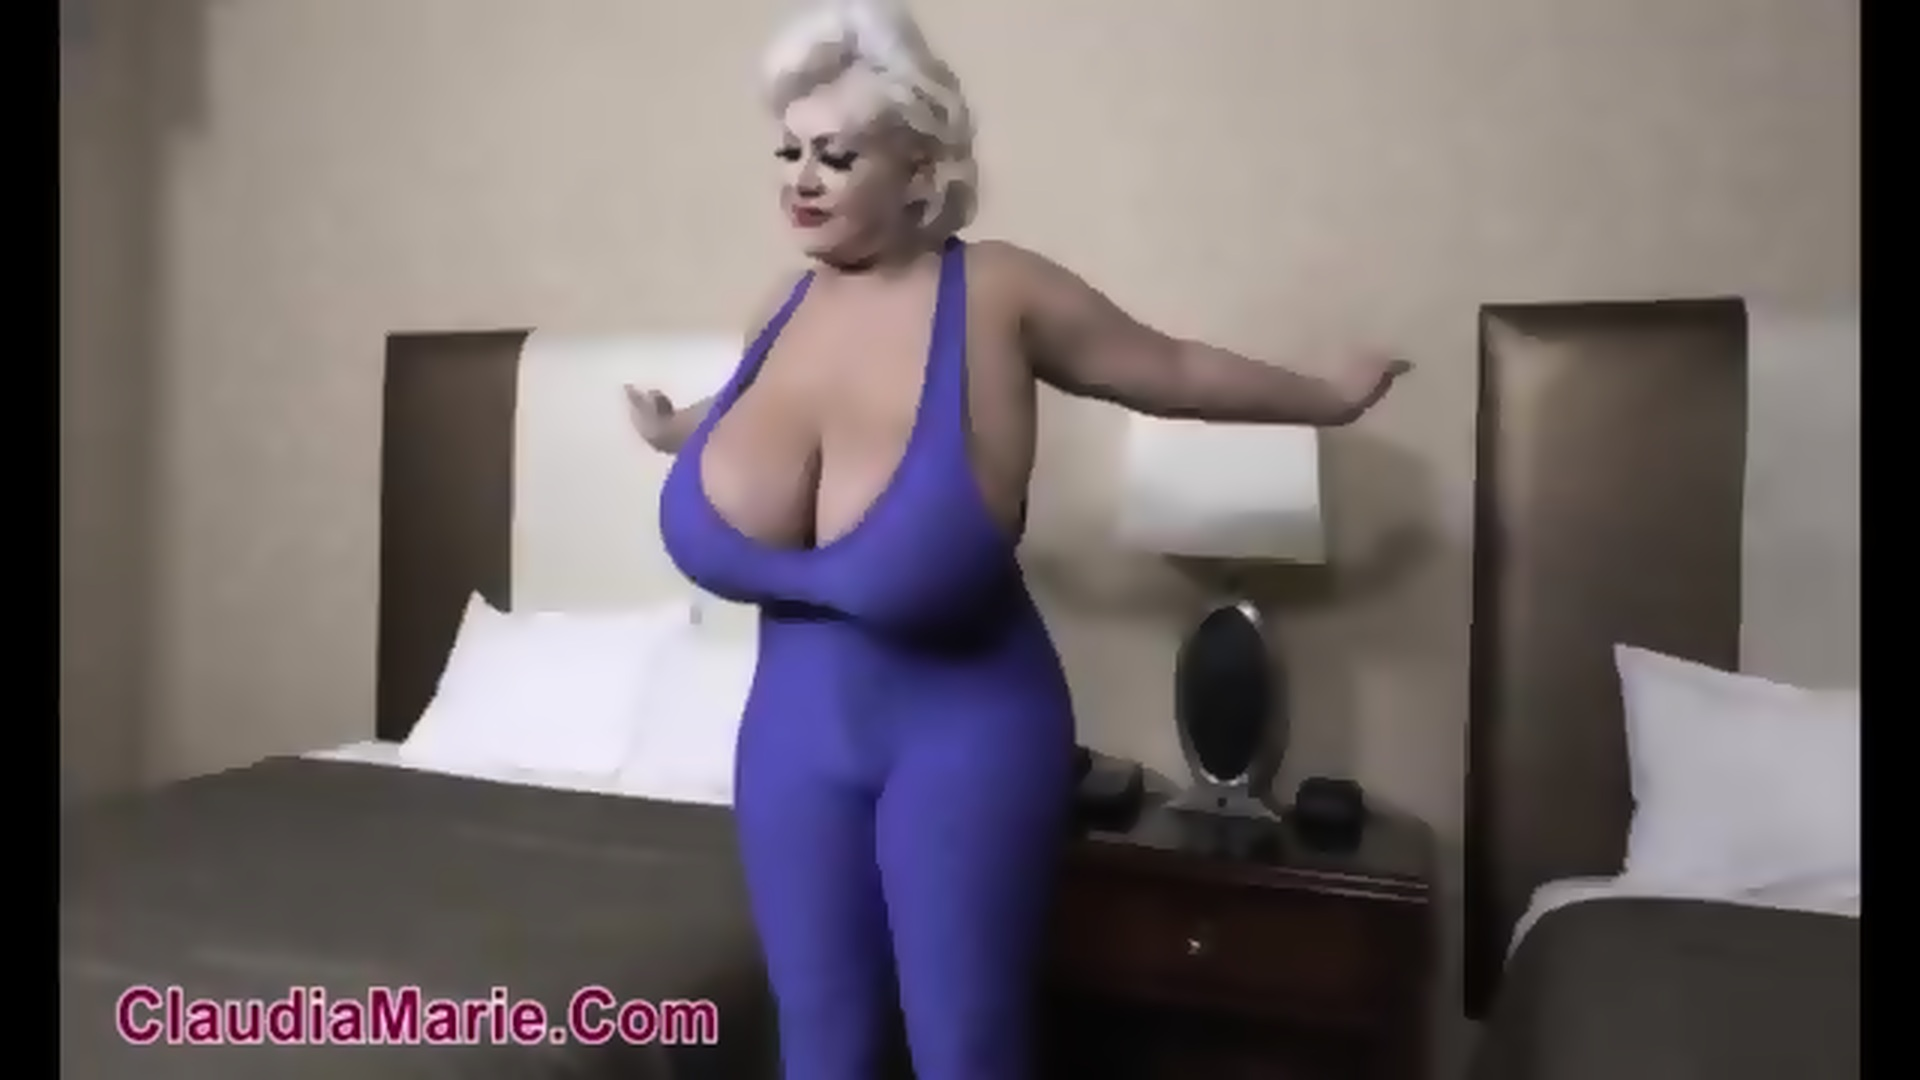 Claudia marie implants pumped and popped